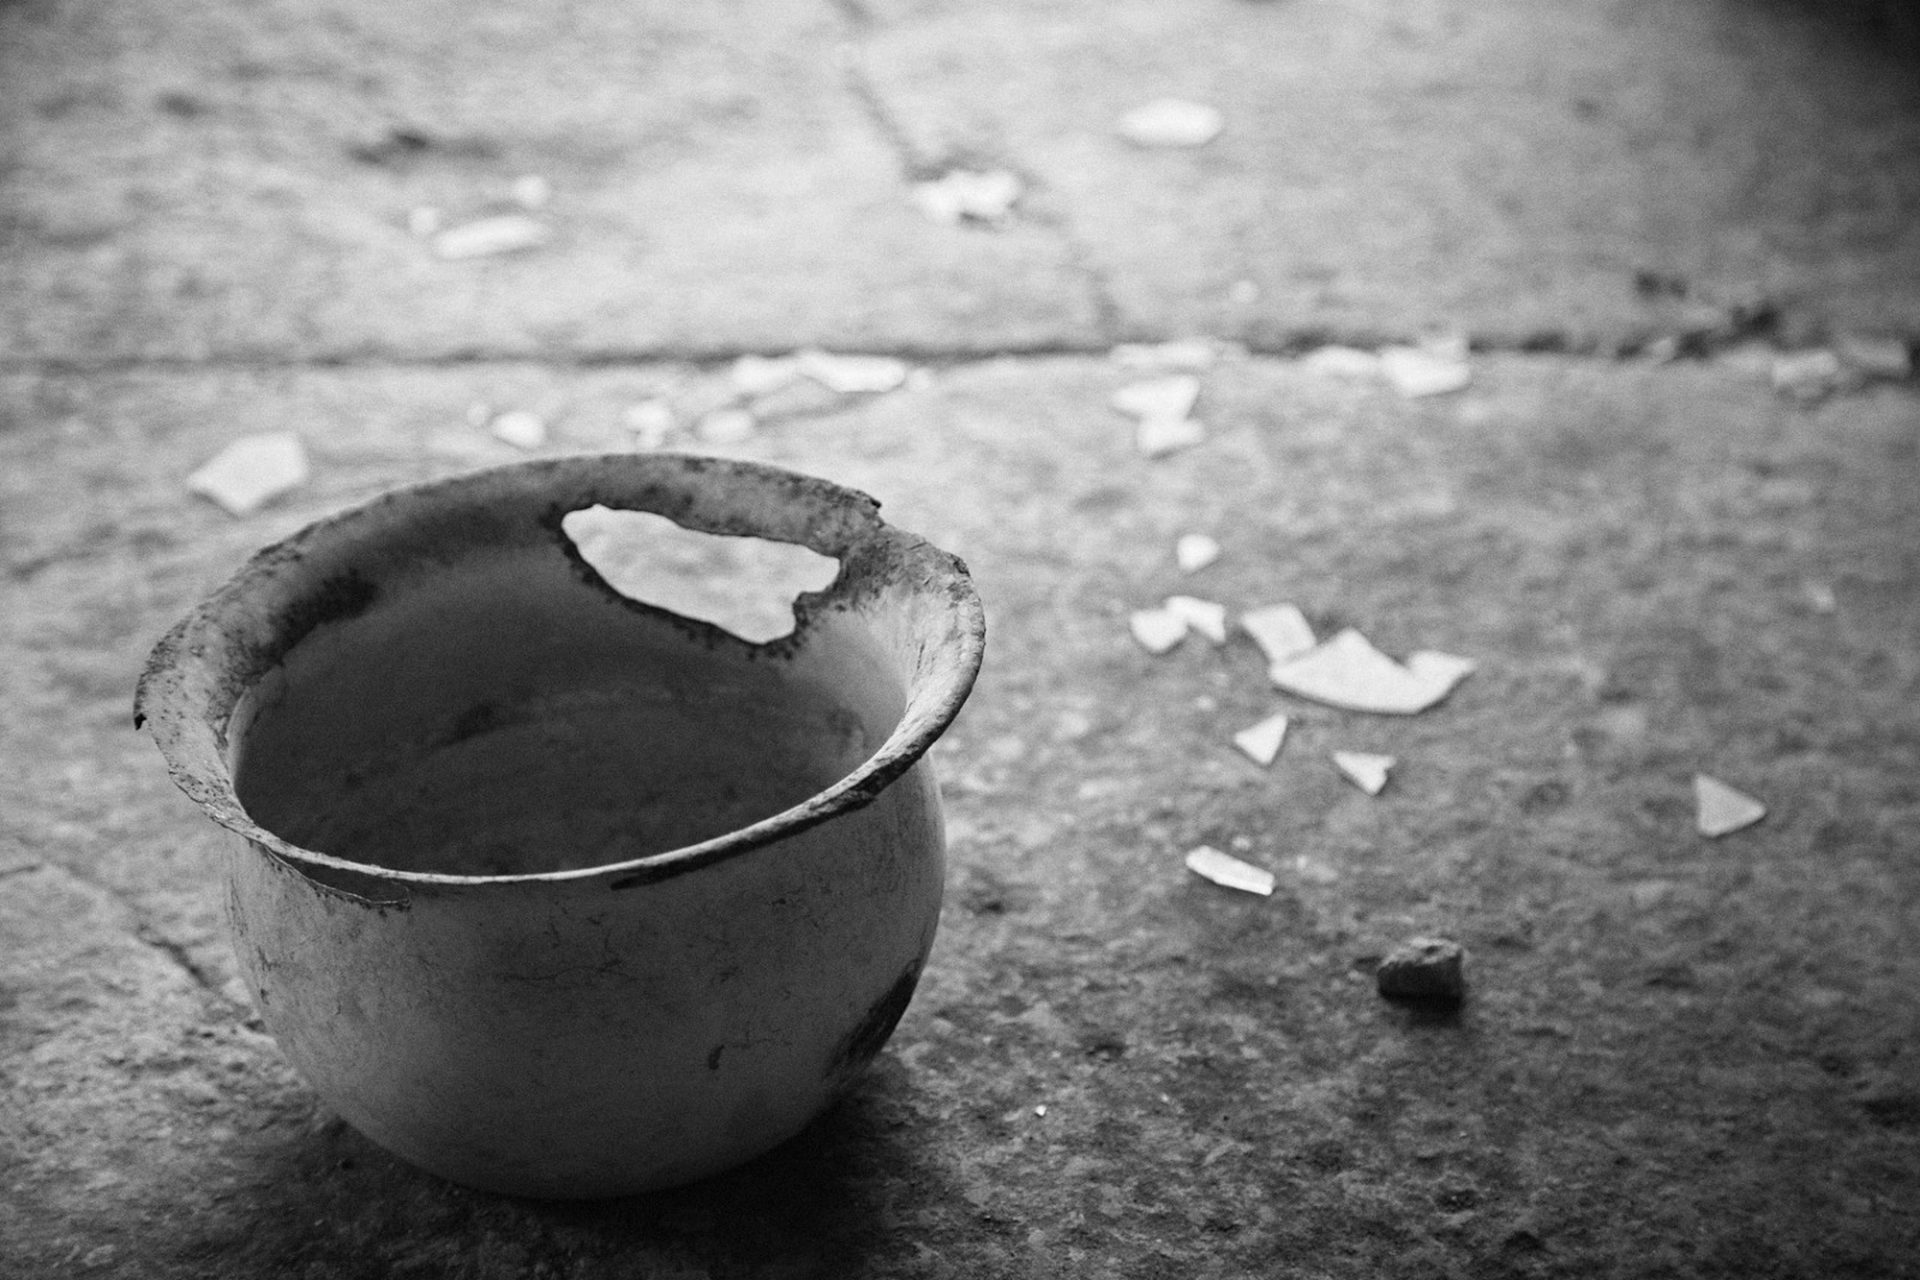 Detail of a metal bucket with a hole. There are broken glass parts on the floor. Black and white image. Nostalgic.